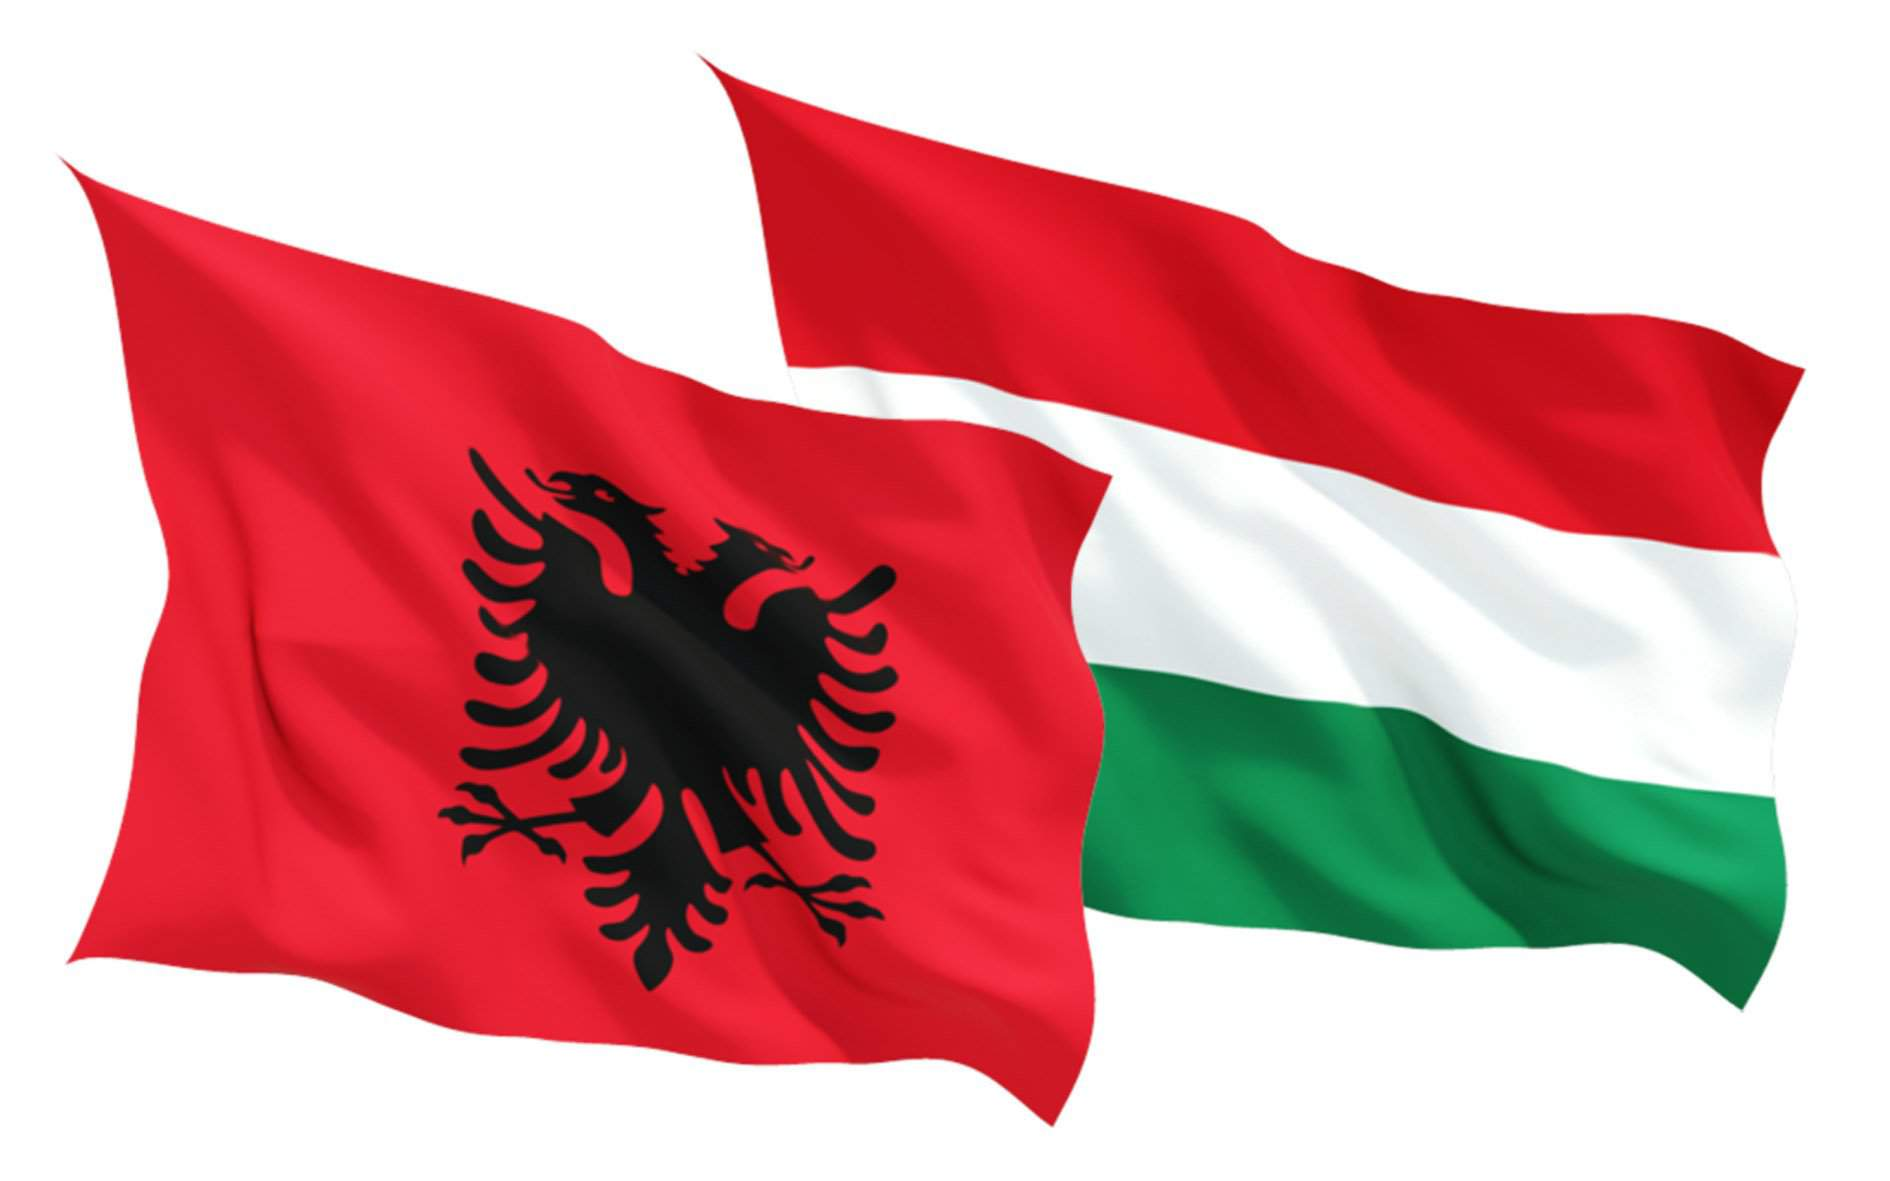 Hungarian government: Free elections needed in Albania